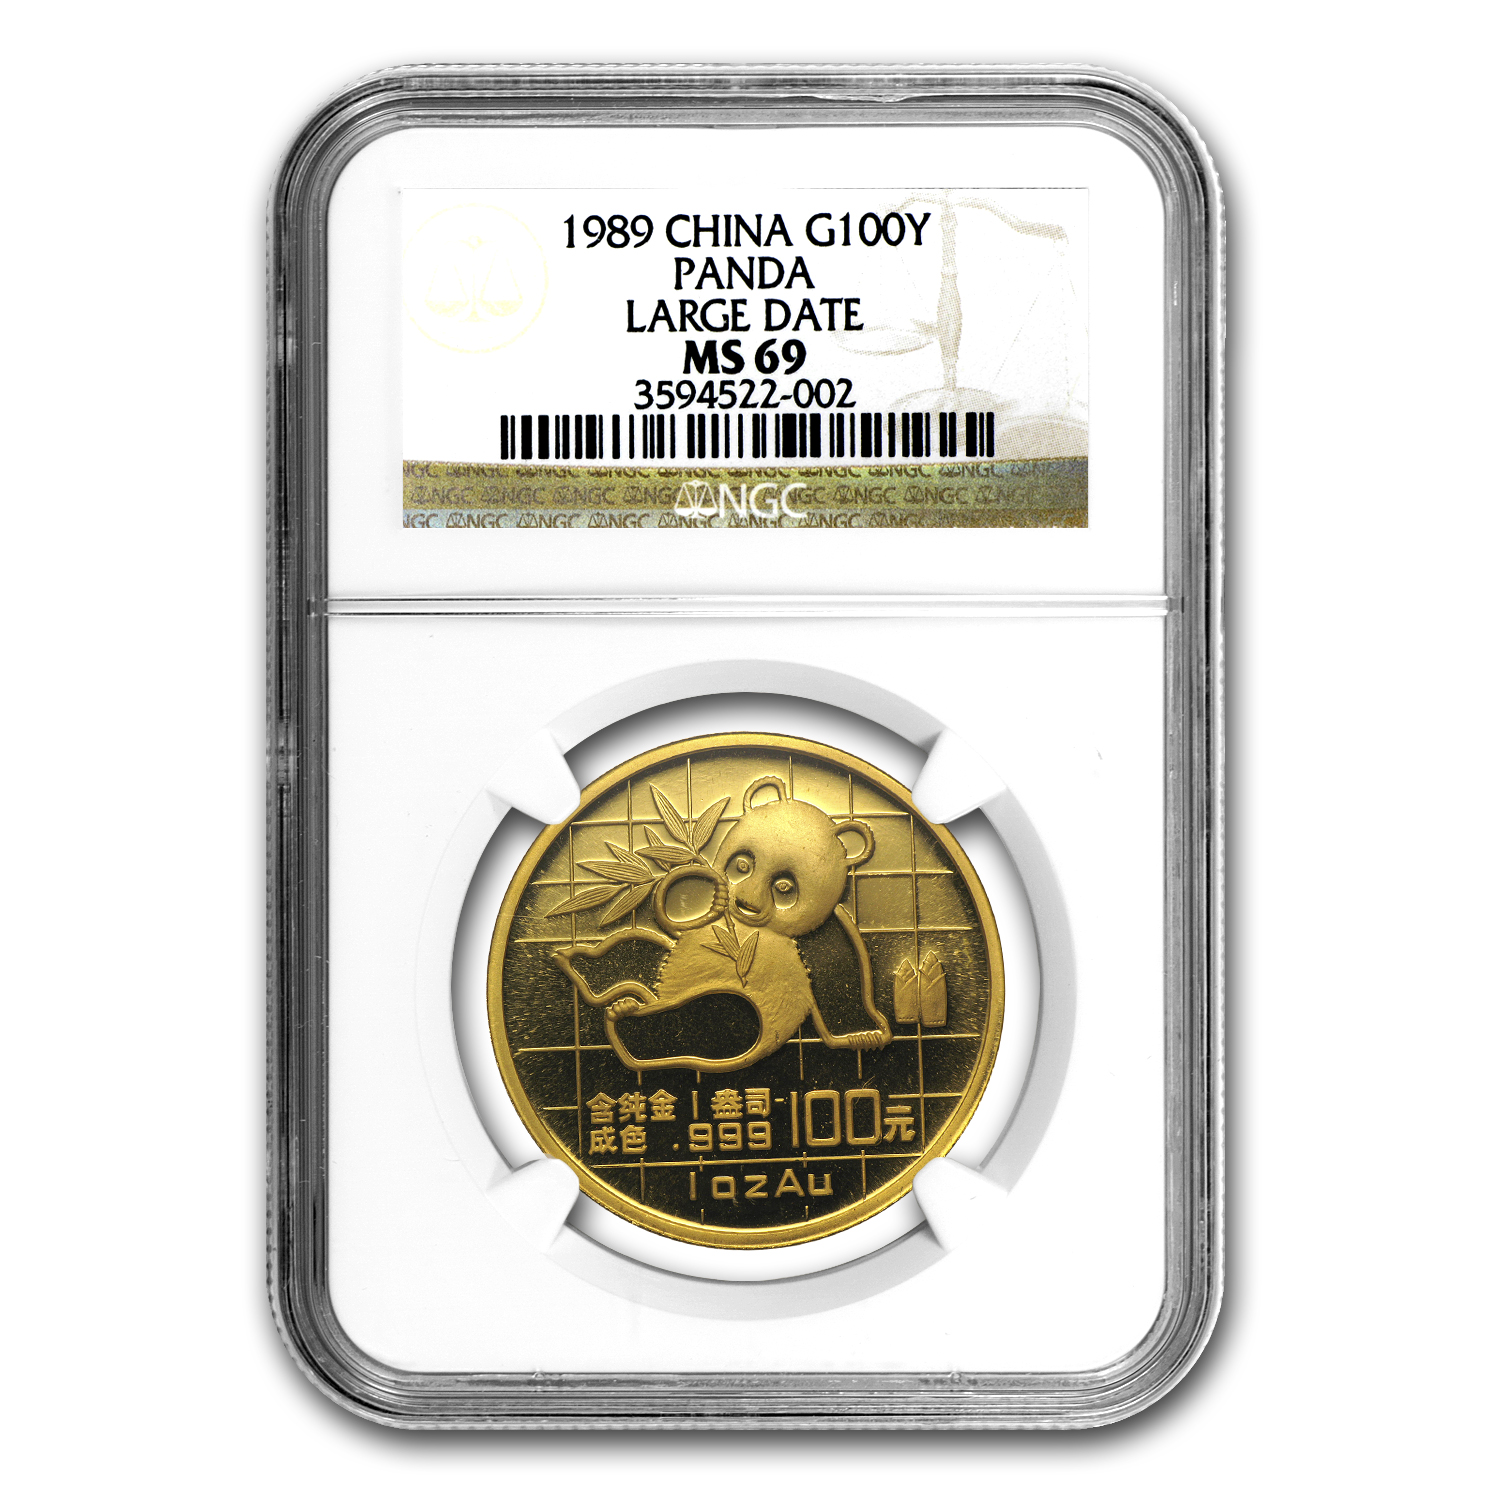 1989 China 1 oz Gold Panda Large Date MS-69 NGC